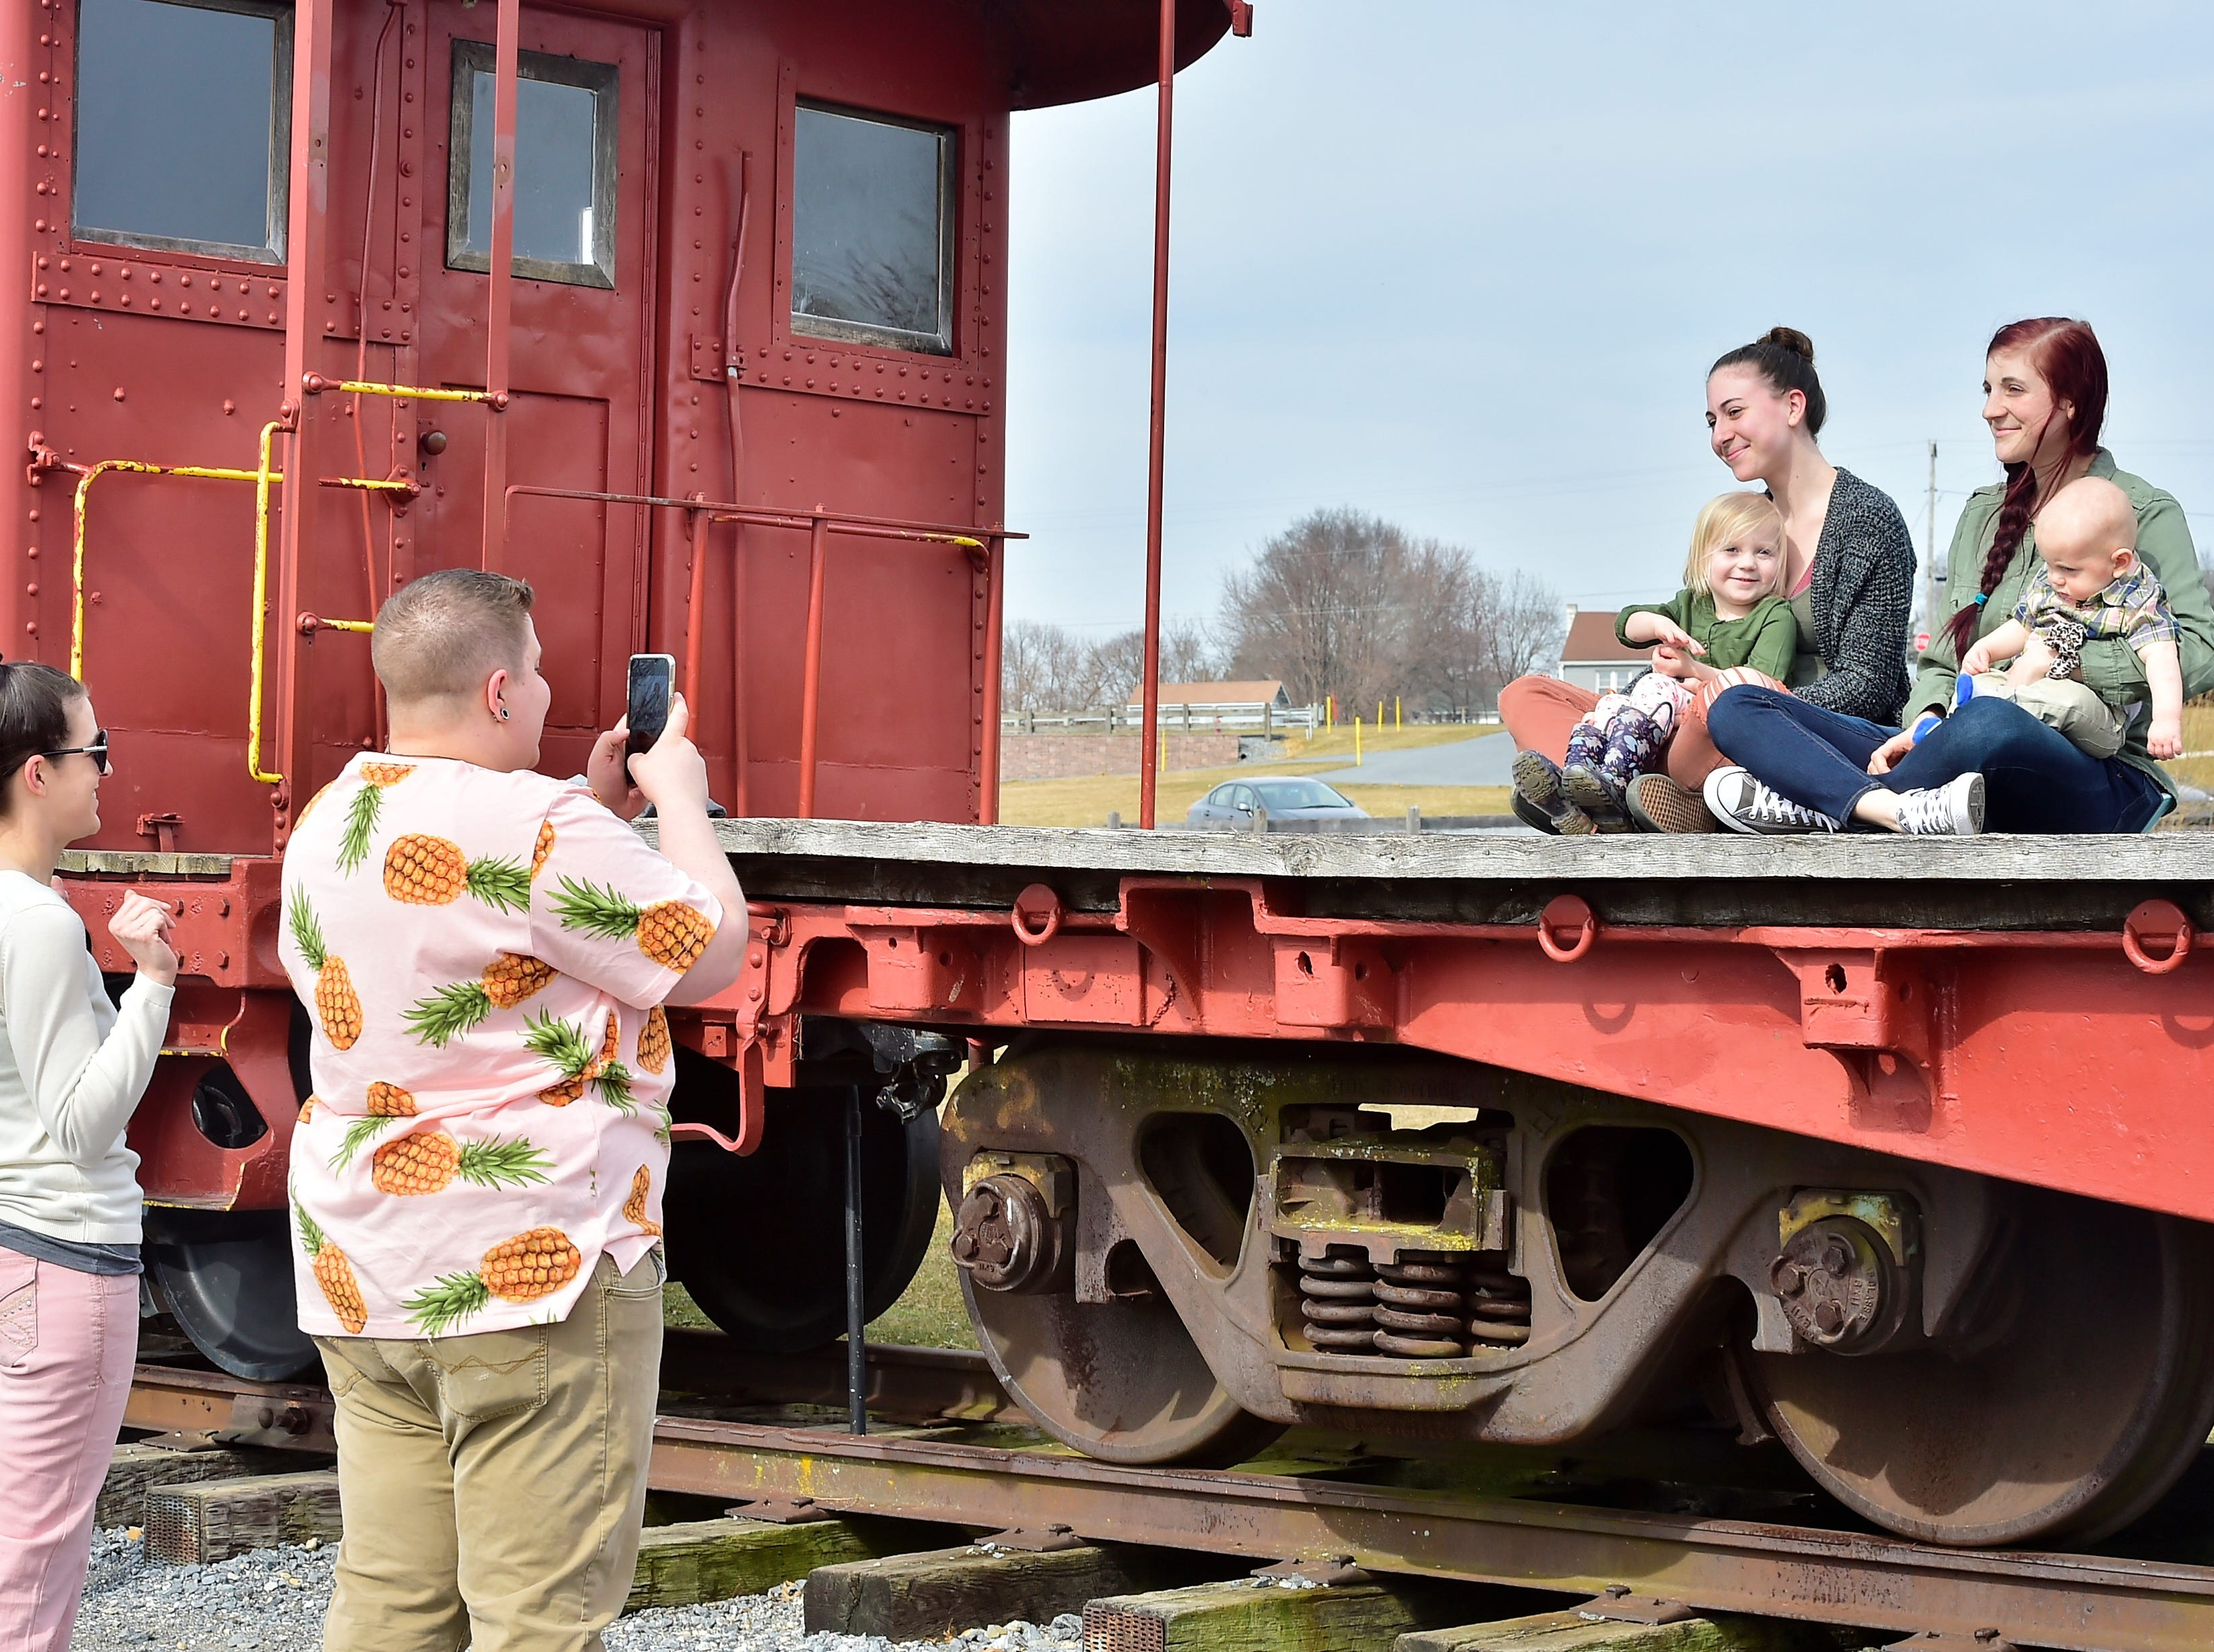 A group of friends take photos at one of the railroad cars at Norlo Park in Fayetteville on Thursday afternoon, March 14, 2019. Pictured are, from left: Krista Heinbaugh, Chambersburg; Taryn Leas, Shippensburg; Addison Chapman, 3; Samantha Laughman, Shippensburg; Christy Chapman of Jacksonville, N.C.; and Jamison Chapman, 8 months.